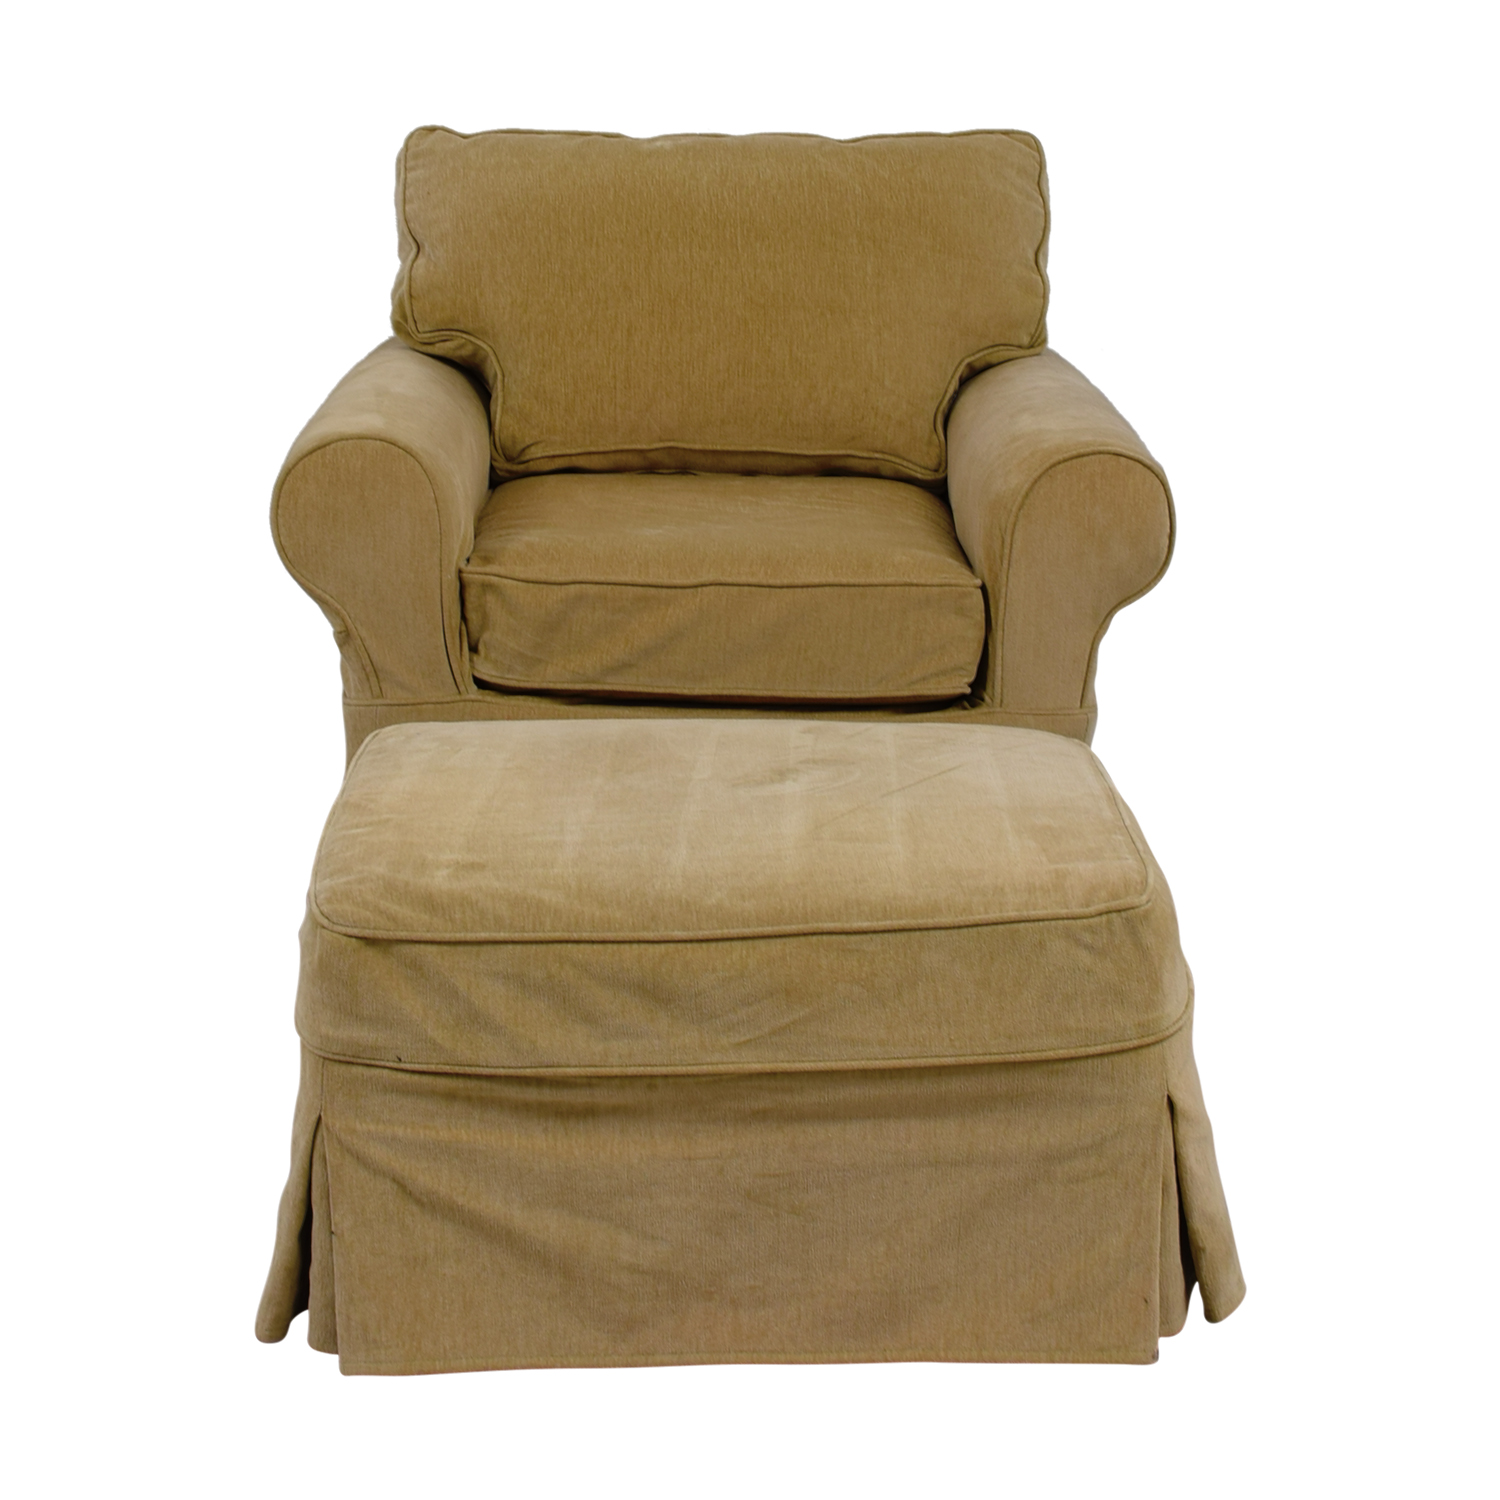 Fine 76 Off Mitchell Gold Bob Williams Mitchell Gold Bob Williams Beige Accent Chair And Ottoman Chairs Home Remodeling Inspirations Propsscottssportslandcom